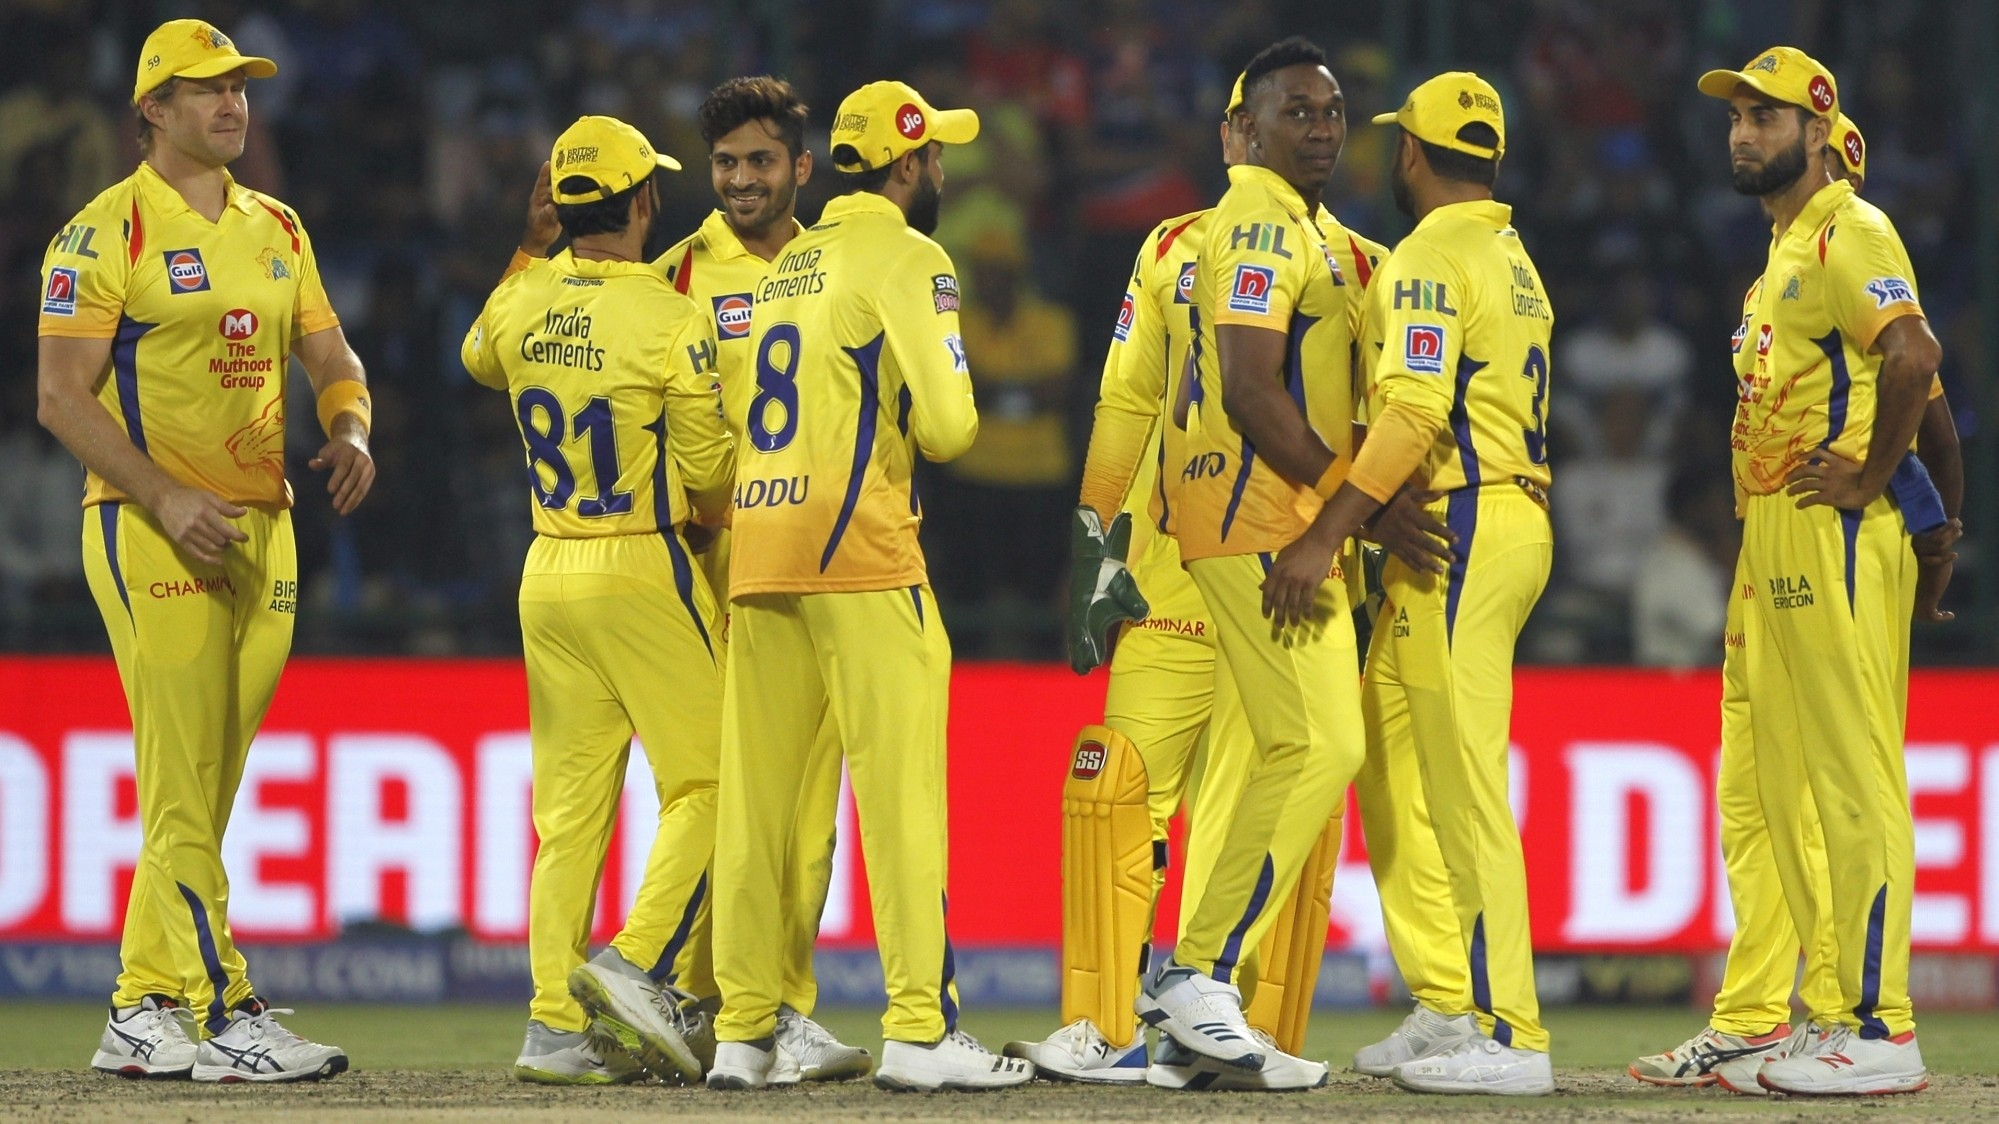 IPL 2019: CSK announces the replacement for injured pacer Lungi Ngidi